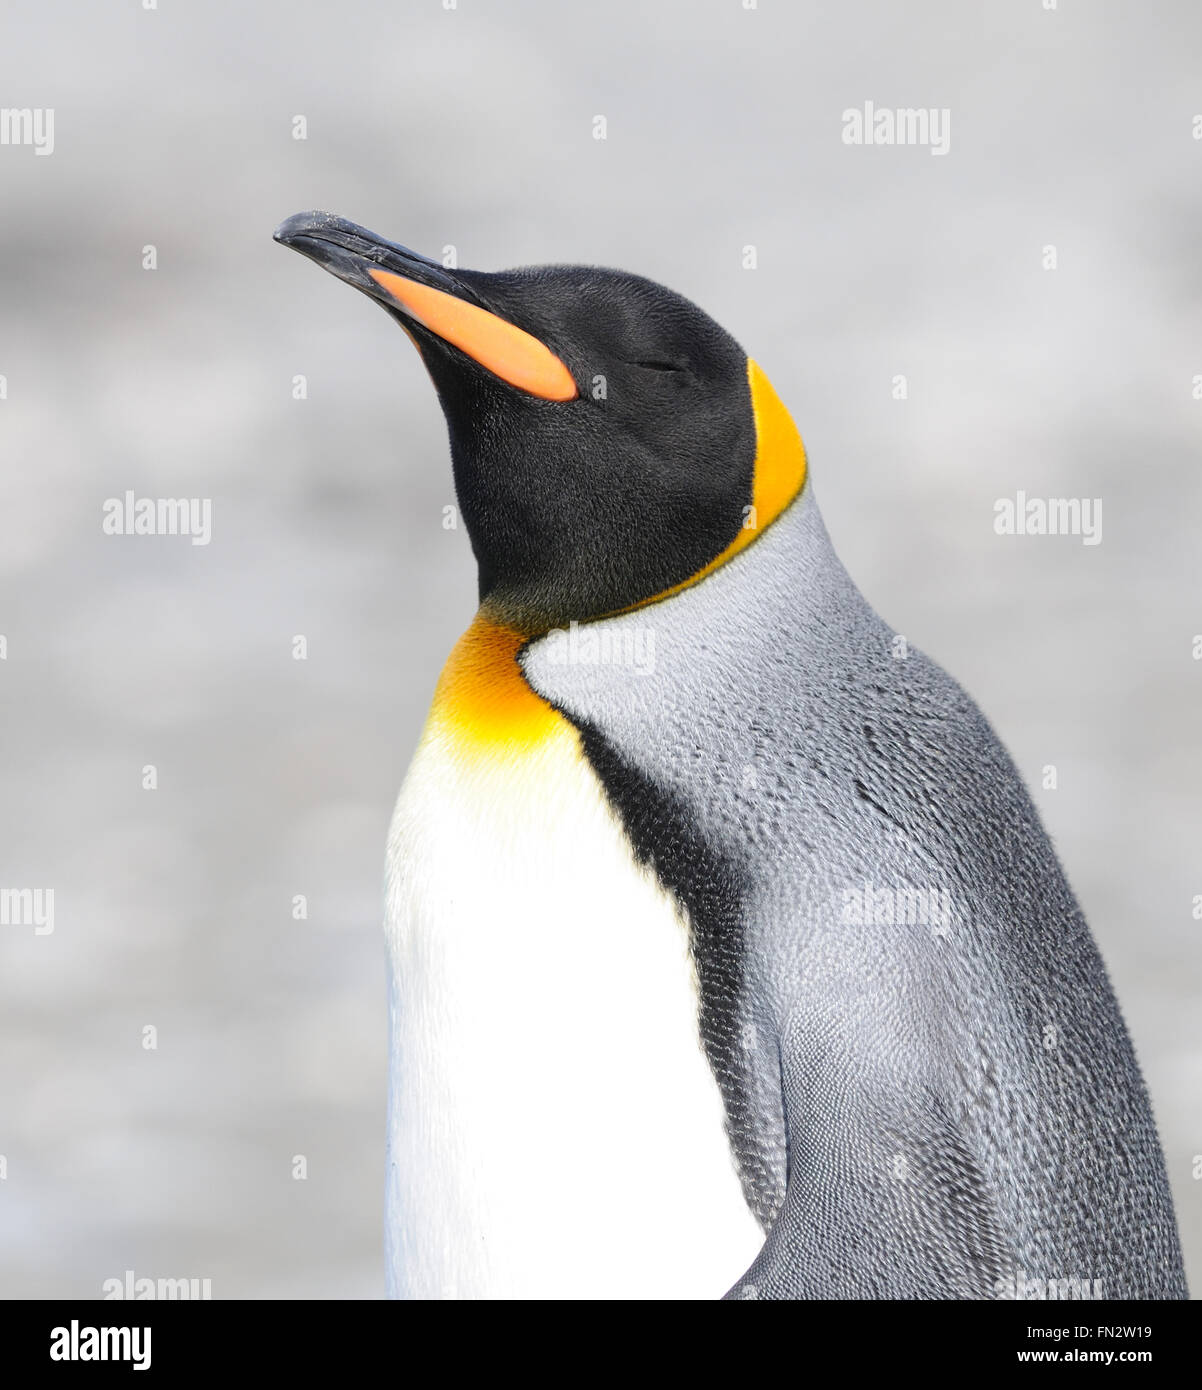 A King penguin (Aptenodytes patagonicus) on the beach near their nesting colony. Salisbury Plain, Bay of Isles, - Stock Image